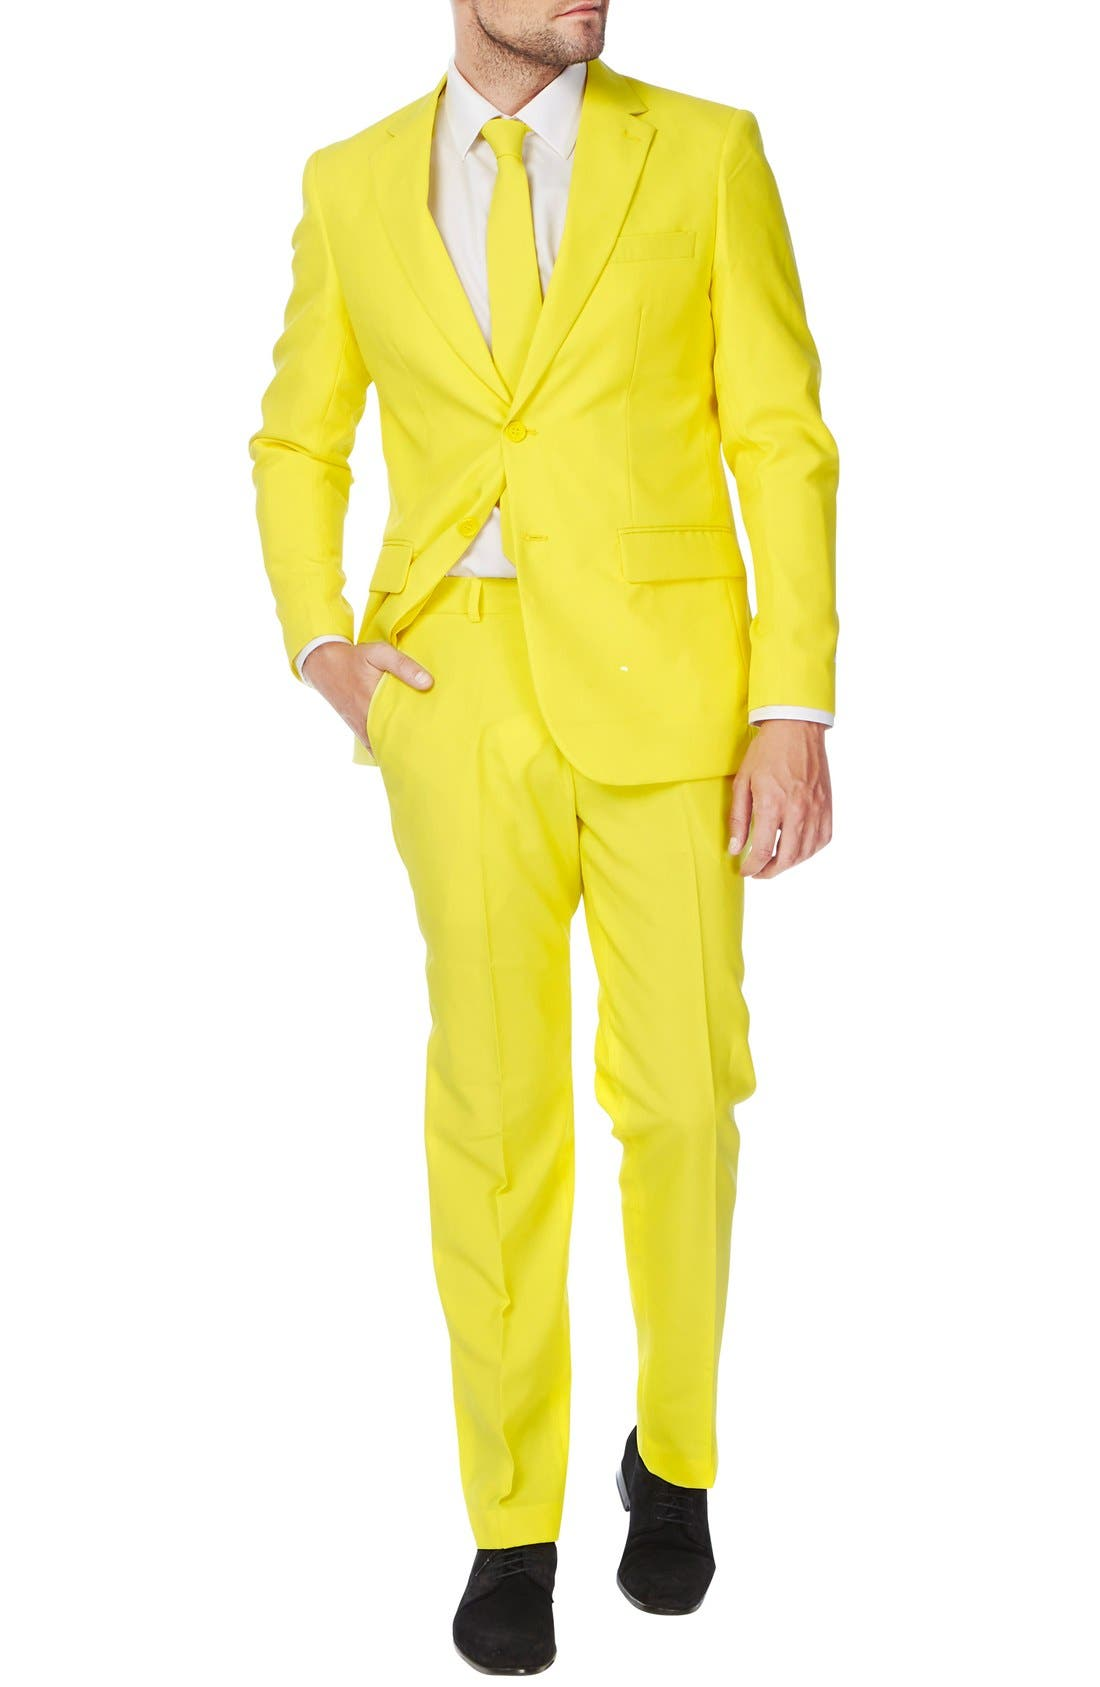 'Yellow Fellow' Trim Fit Two-Piece Suit with Tie,                             Alternate thumbnail 4, color,                             700